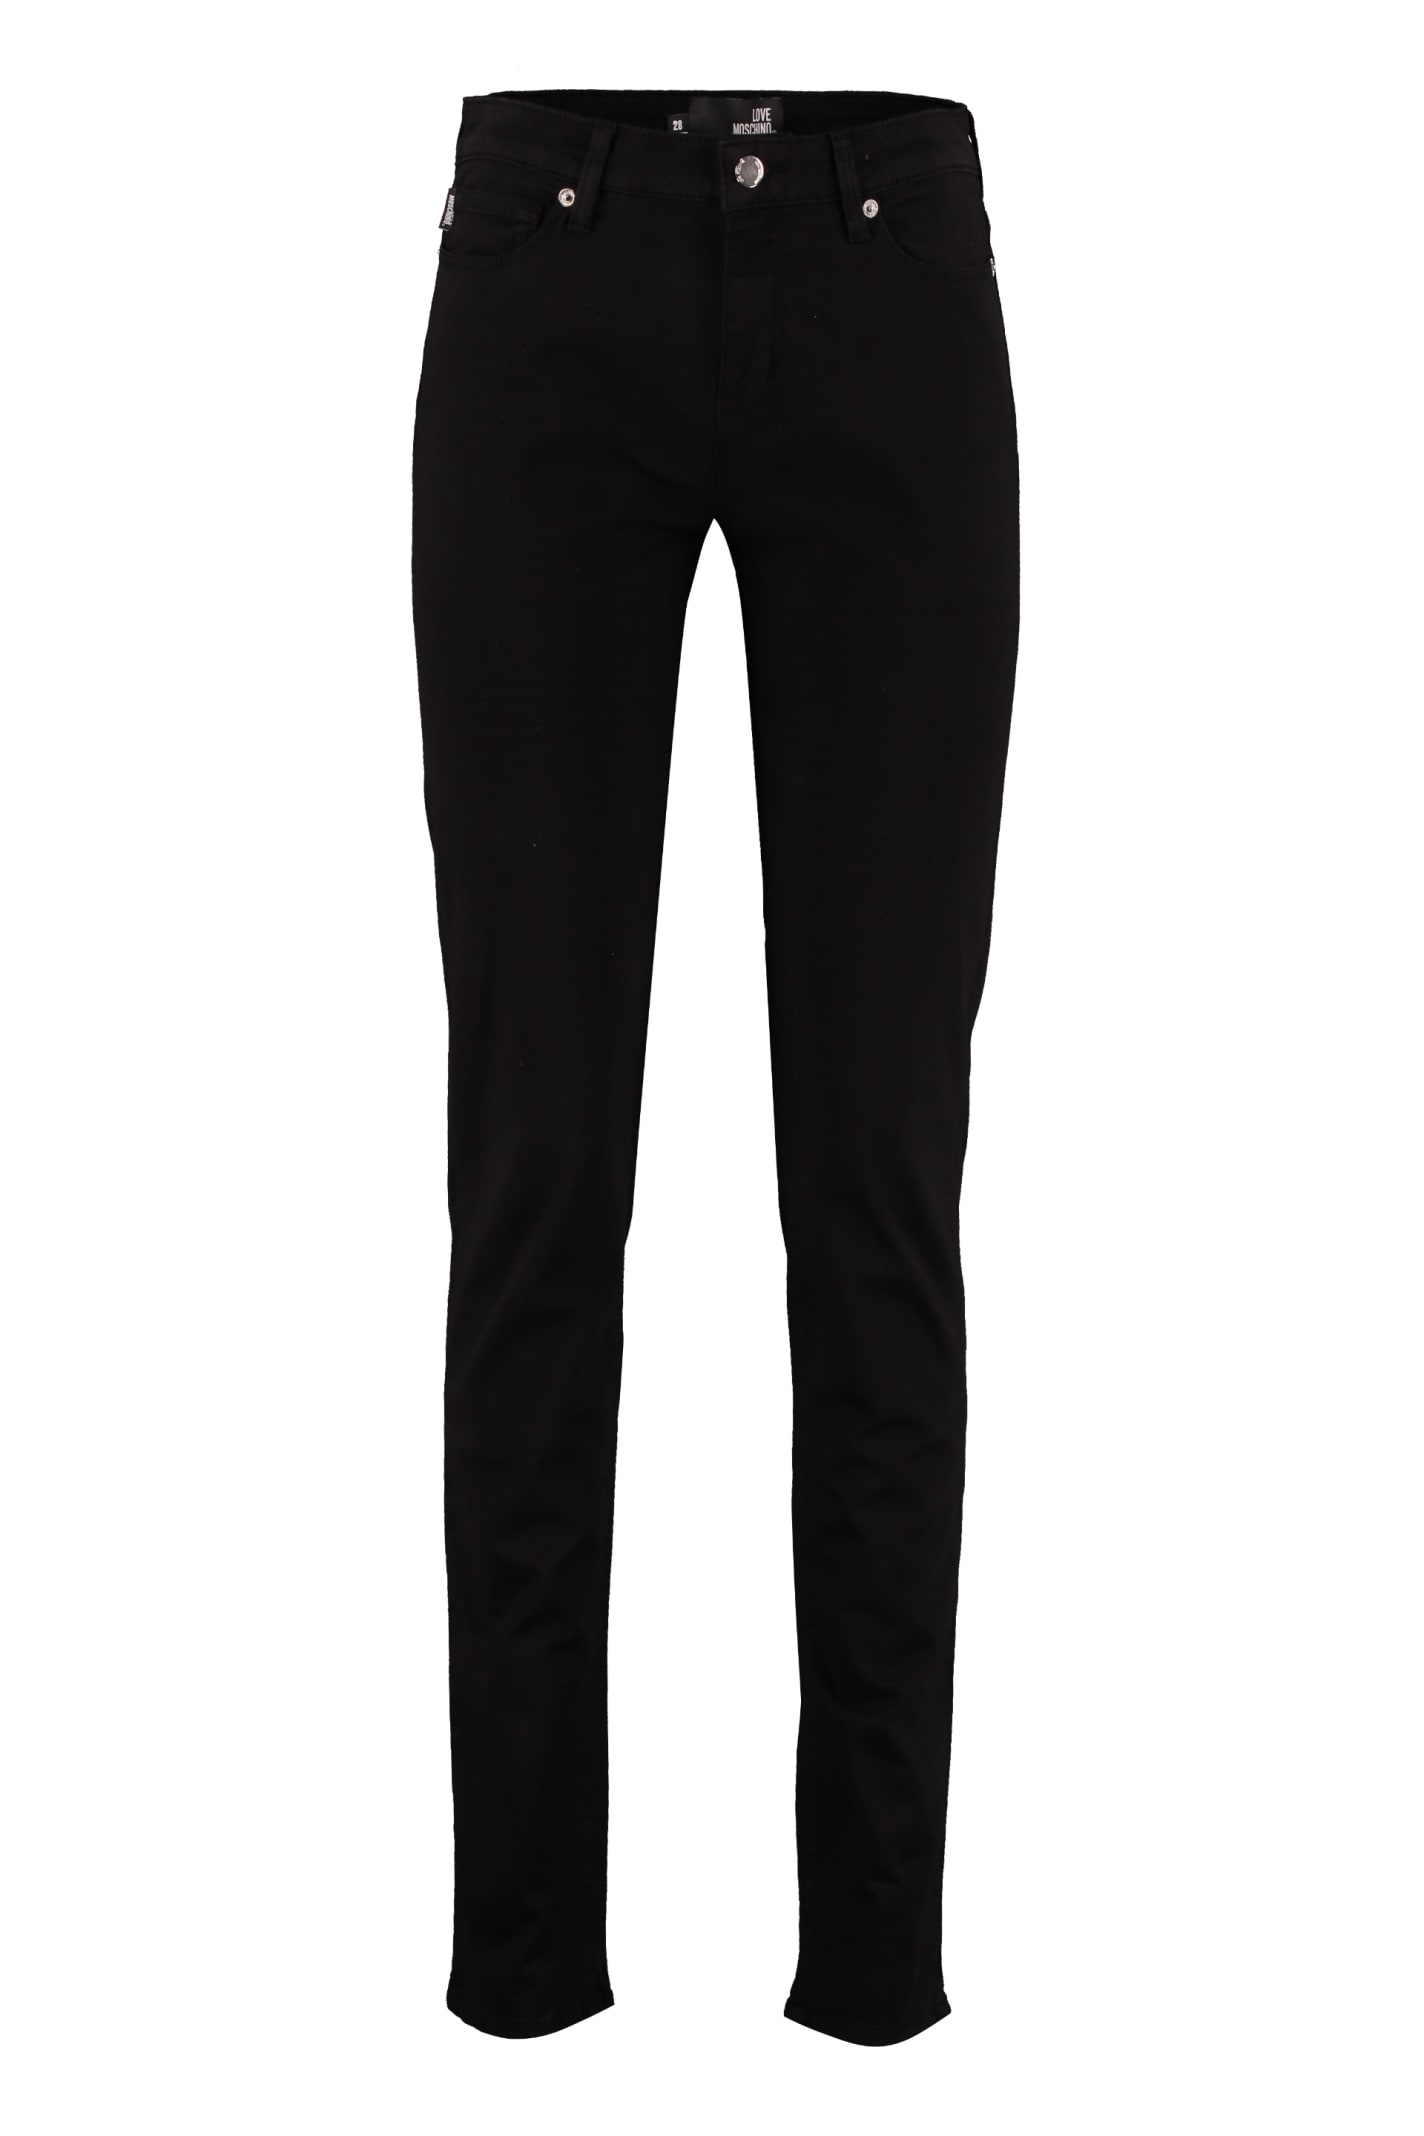 Love Moschino Stretch Cotton Trousers